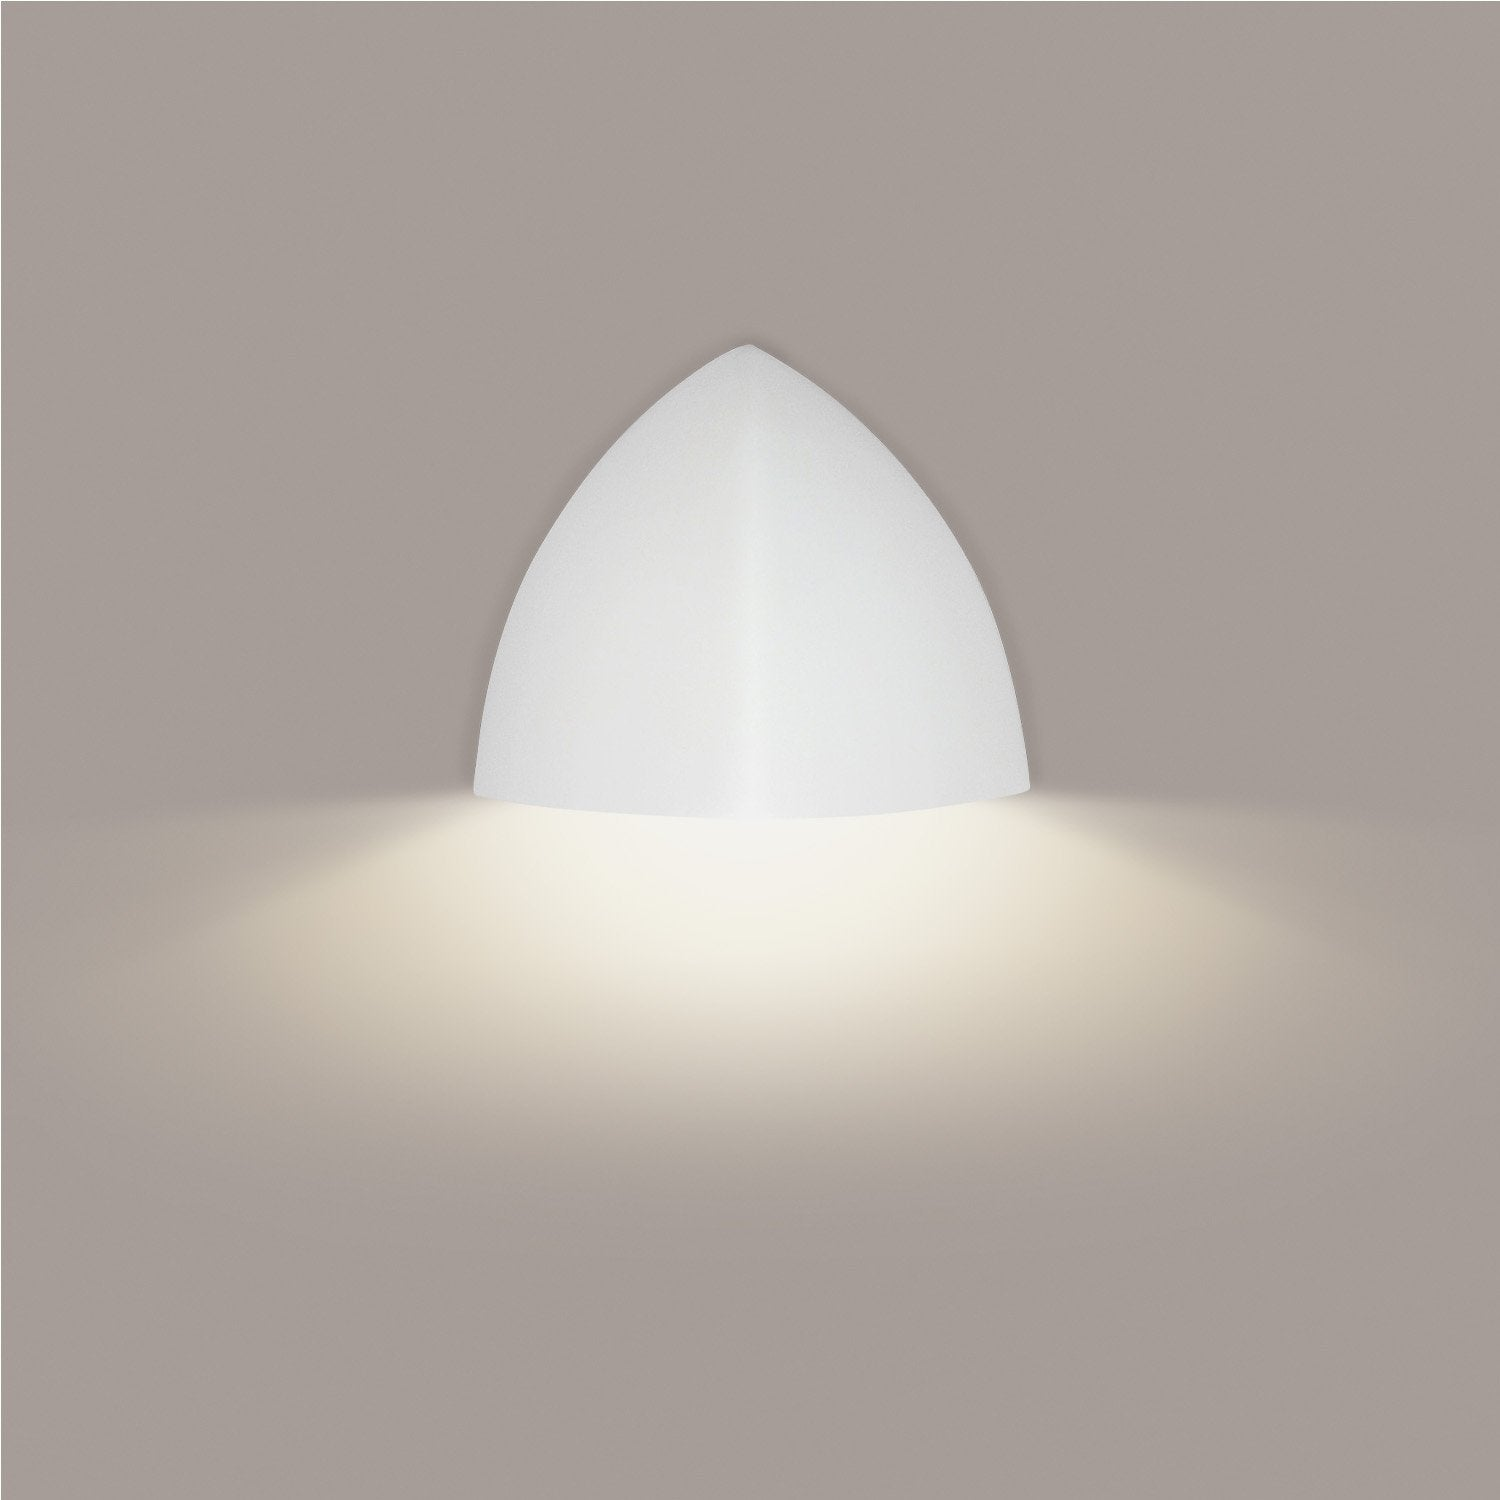 A19 901D-WETL-PS Islands of Light Collection Malta Pistachio Finish Wall Sconce